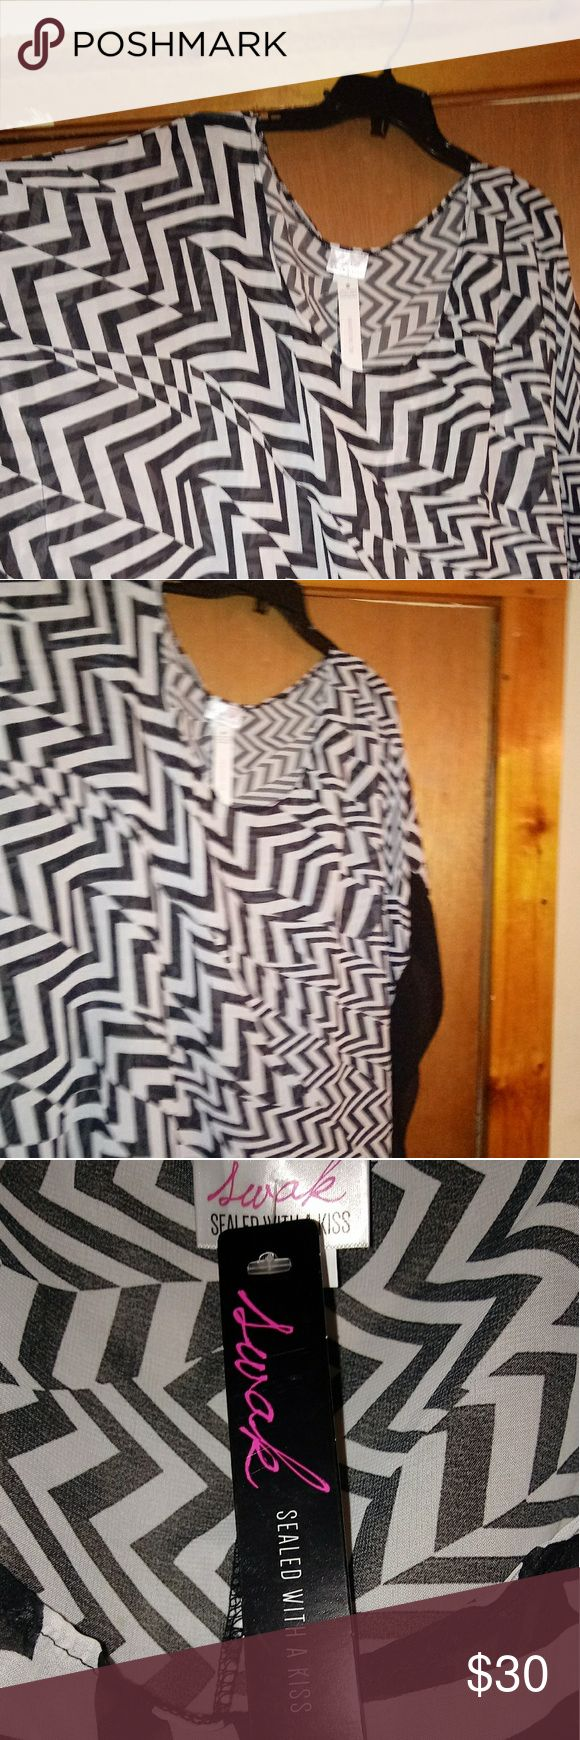 Sheer black and white zigzag tunic 6X BRAND NEW WITH TAG Sheer black and white zigzag tunic with batwings. Fits more like a 5x SWAK Tops Tunics